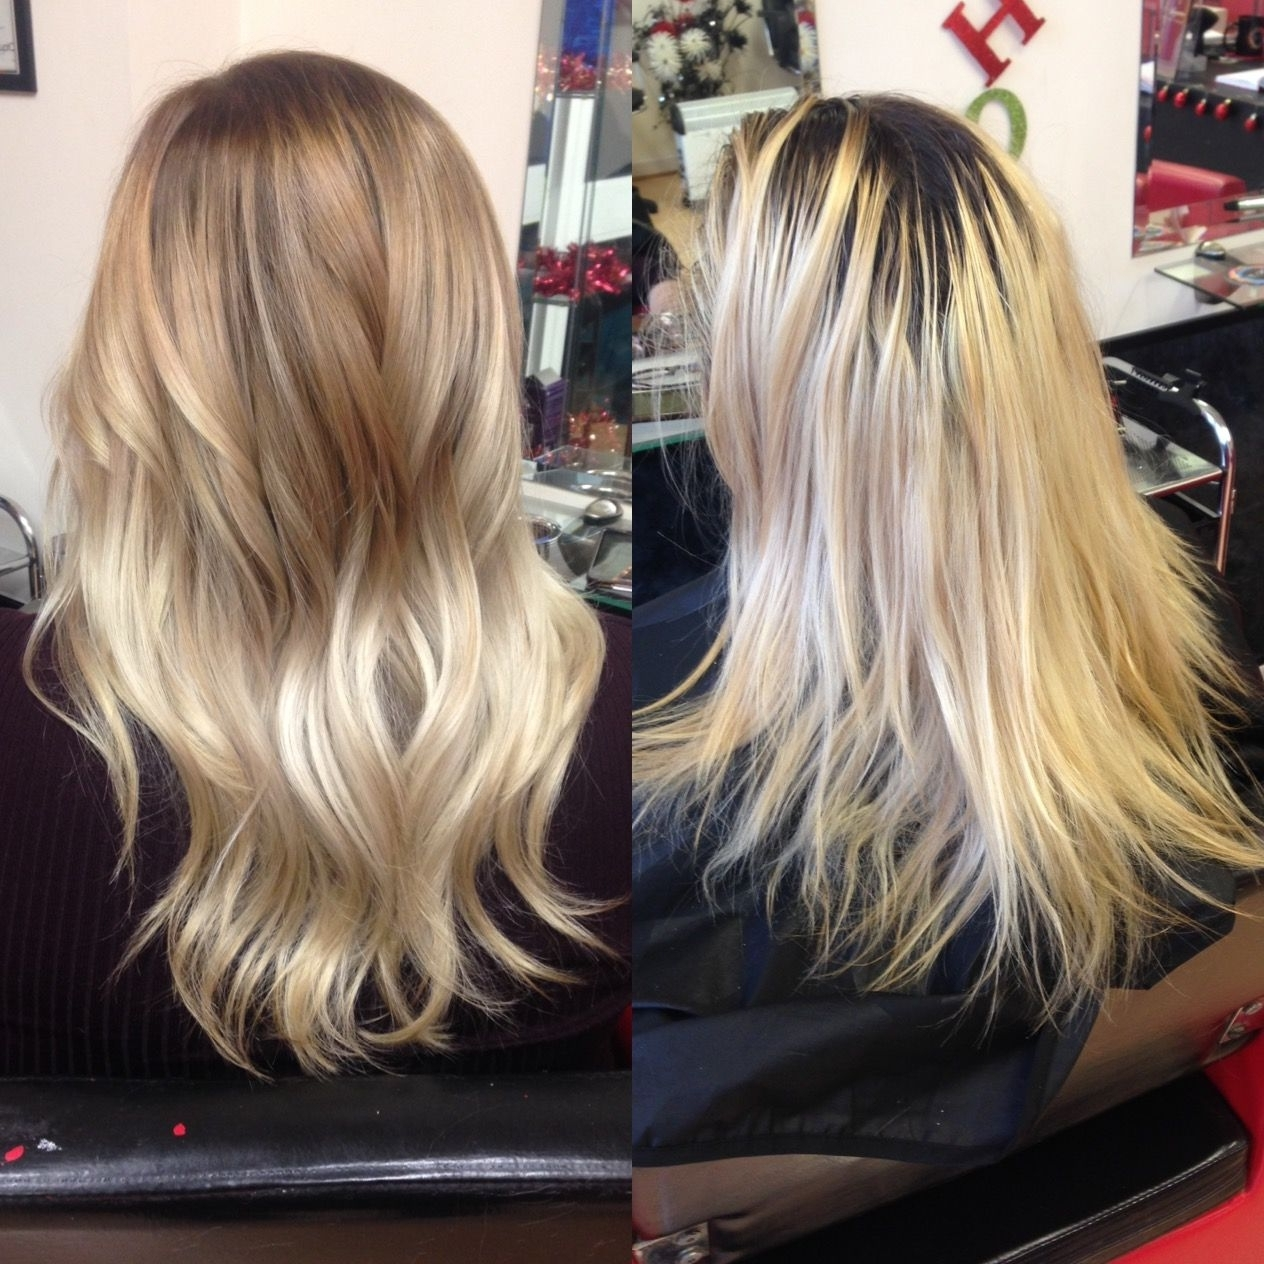 Well Known Grown Out Balayage Blonde Hairstyles In Incredible Before And After Of This Hair Transformation From Grown (View 3 of 20)